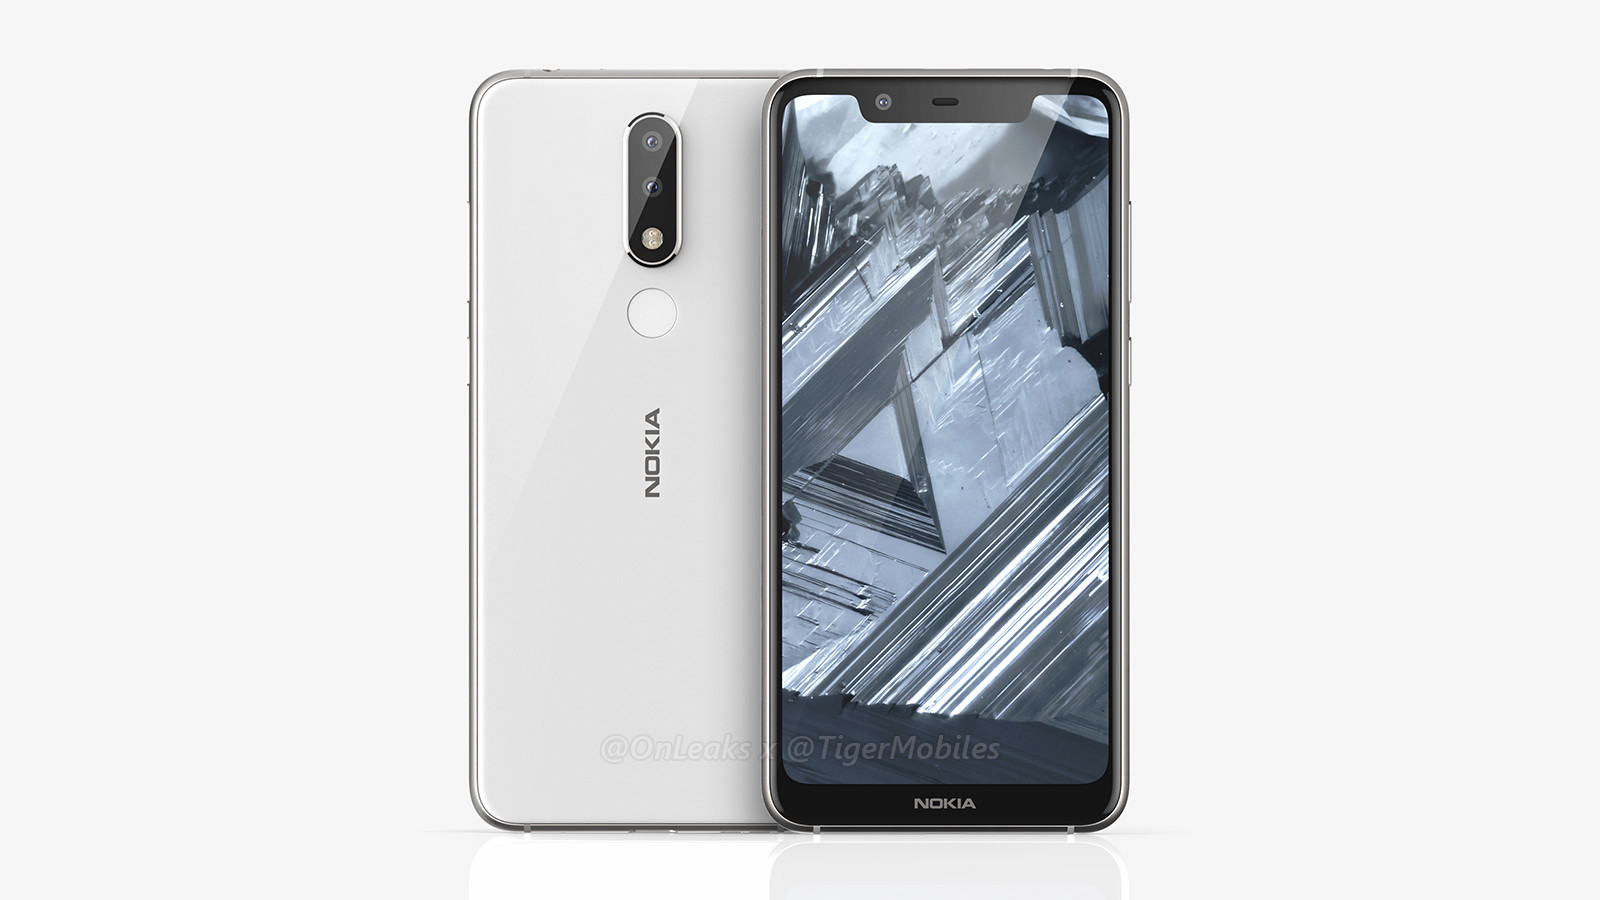 Lovenokia Latest News And Information About Nokia Mobile June 2018 61 Plus Last Week Onleaks Tiger Mobiles Shared Some High Quality 4k Renders 360 Video Of The 51 Device Looked Beautiful In